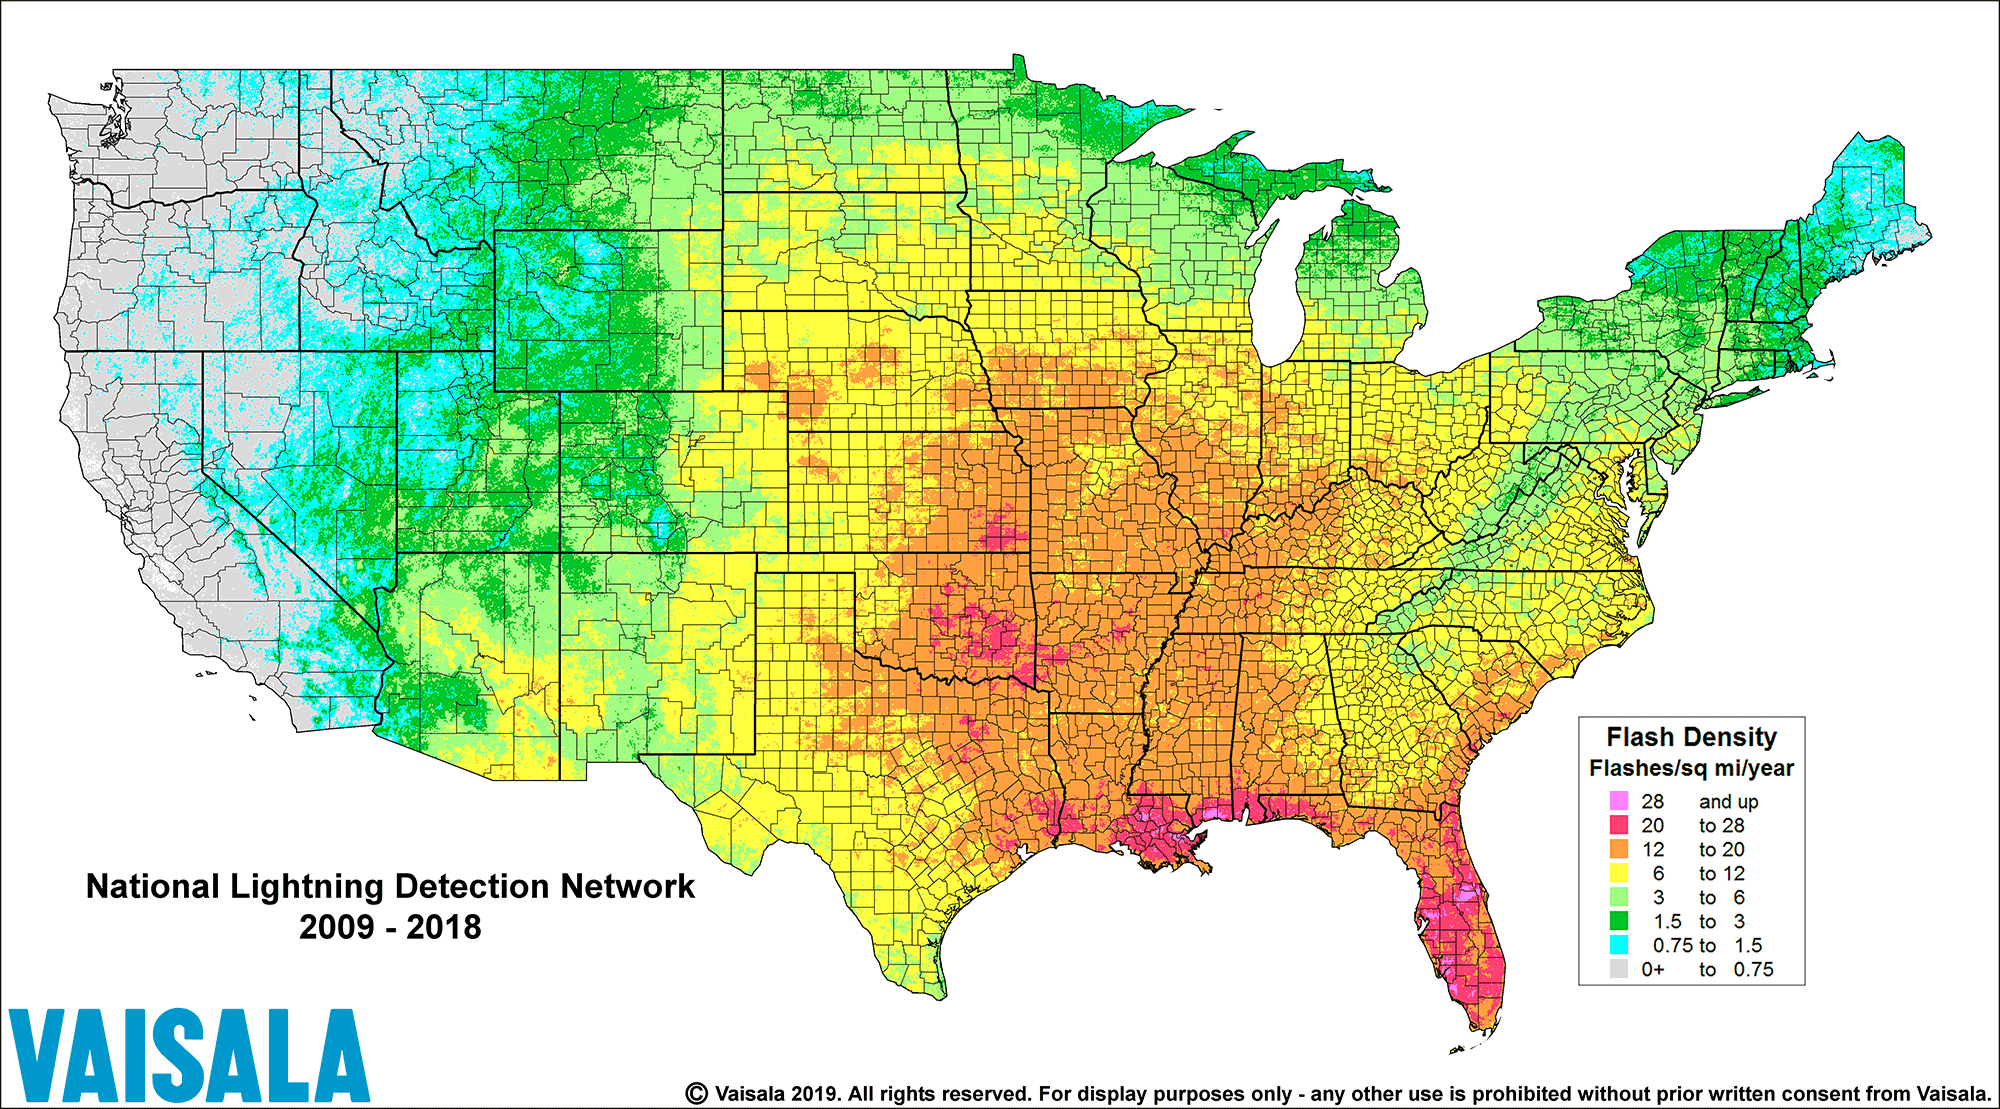 lightning density in the U.S.A.